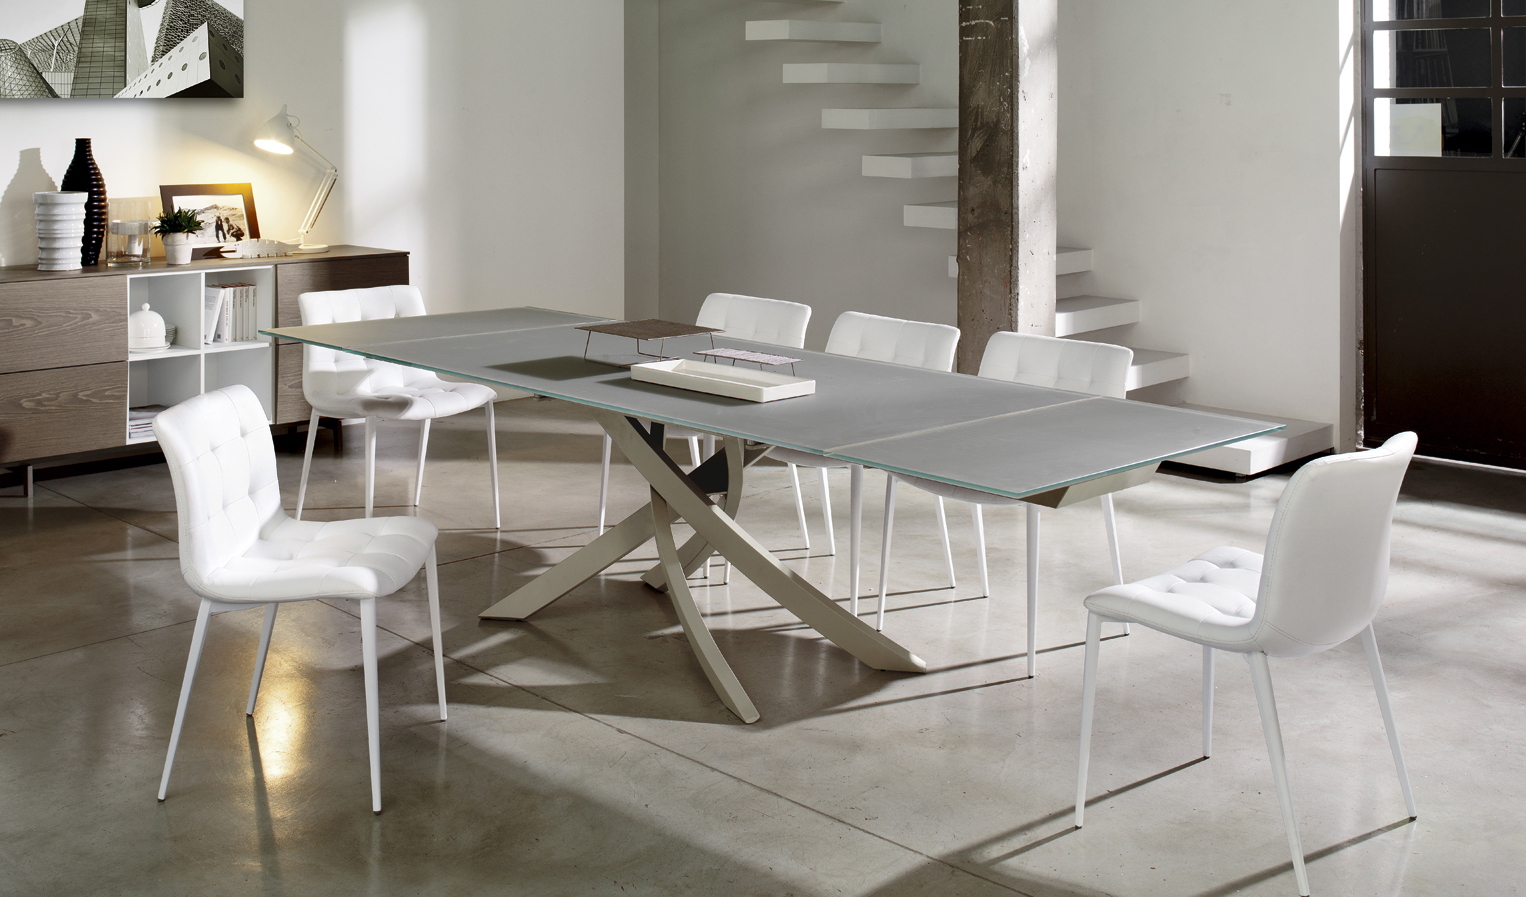 Artistic Rectangular Dining Table